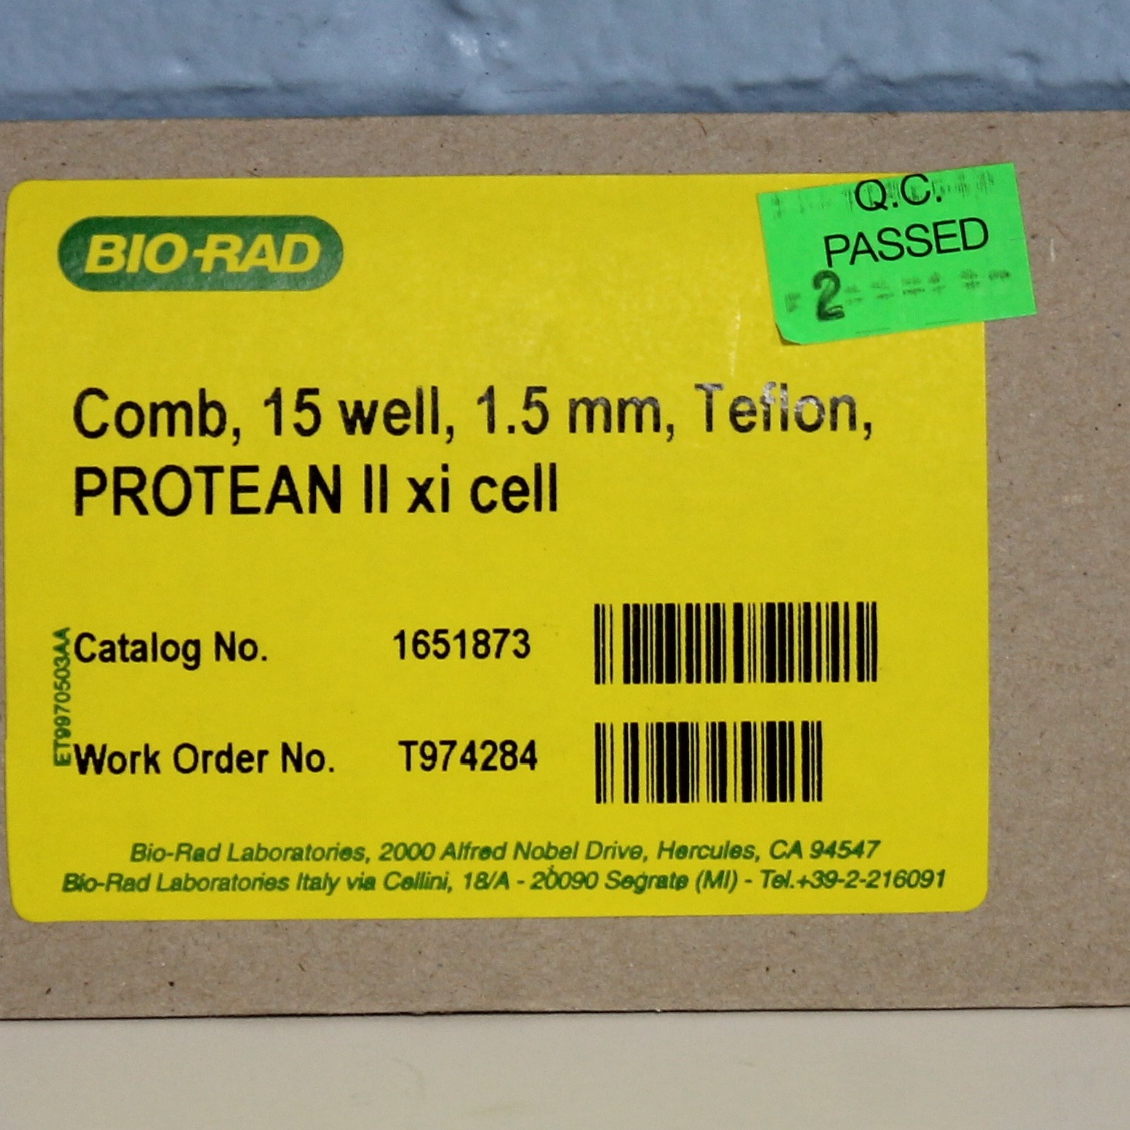 Bio-Rad PROTEAN II xi Comb CAT No. 1651873;15-well, 1.5 mm, Teflon Image